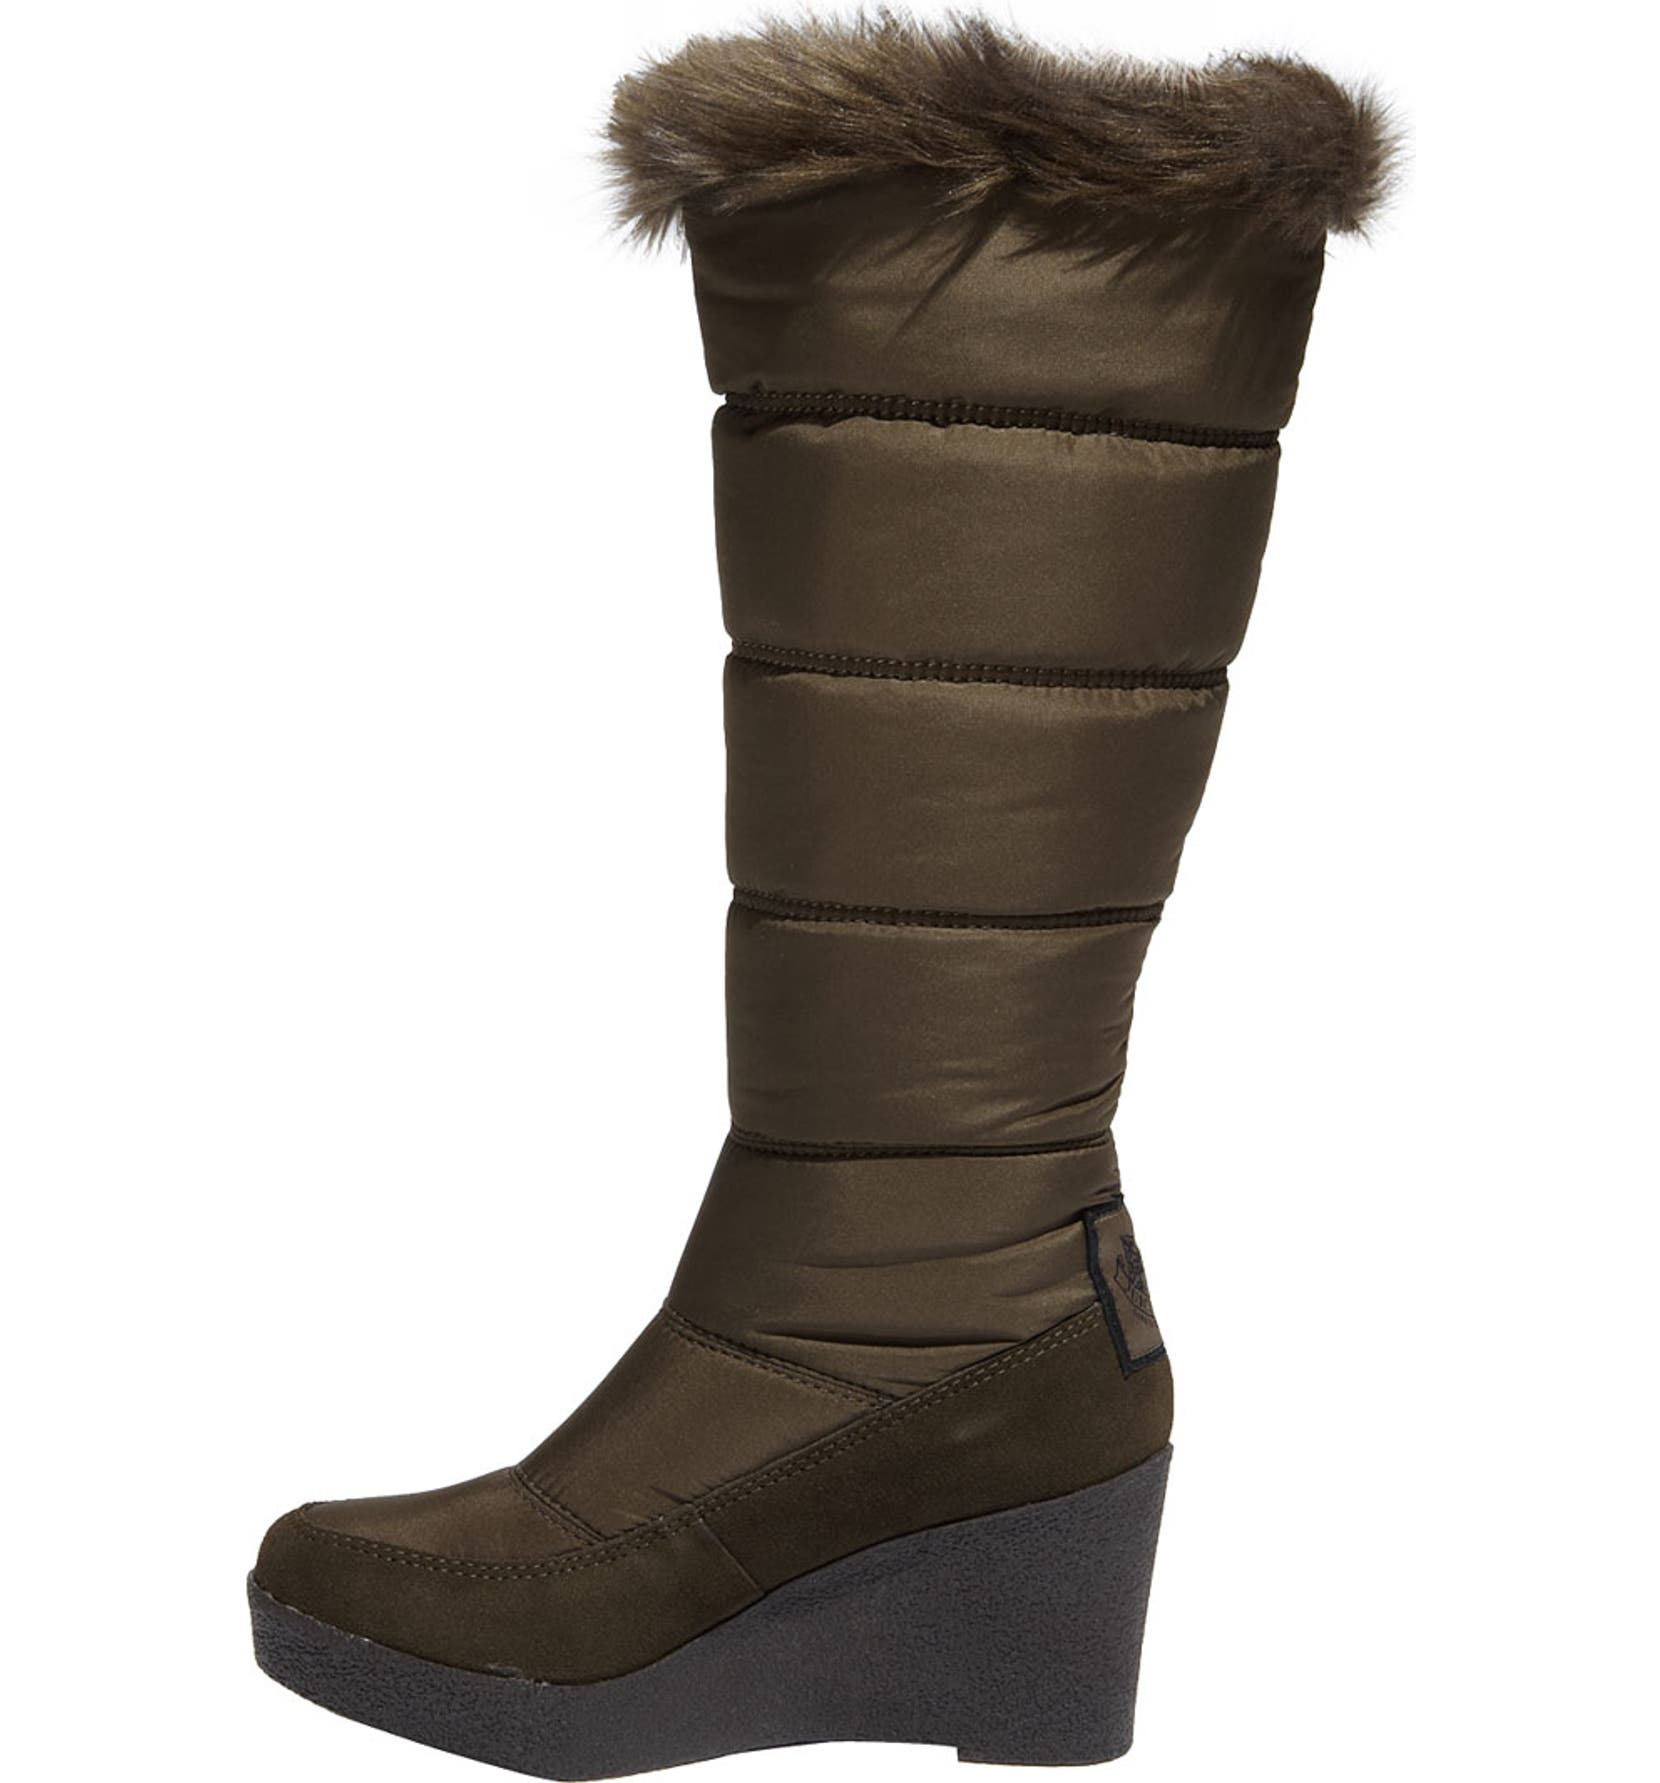 e49162d65a9f Juicy Couture  Everest  Boot